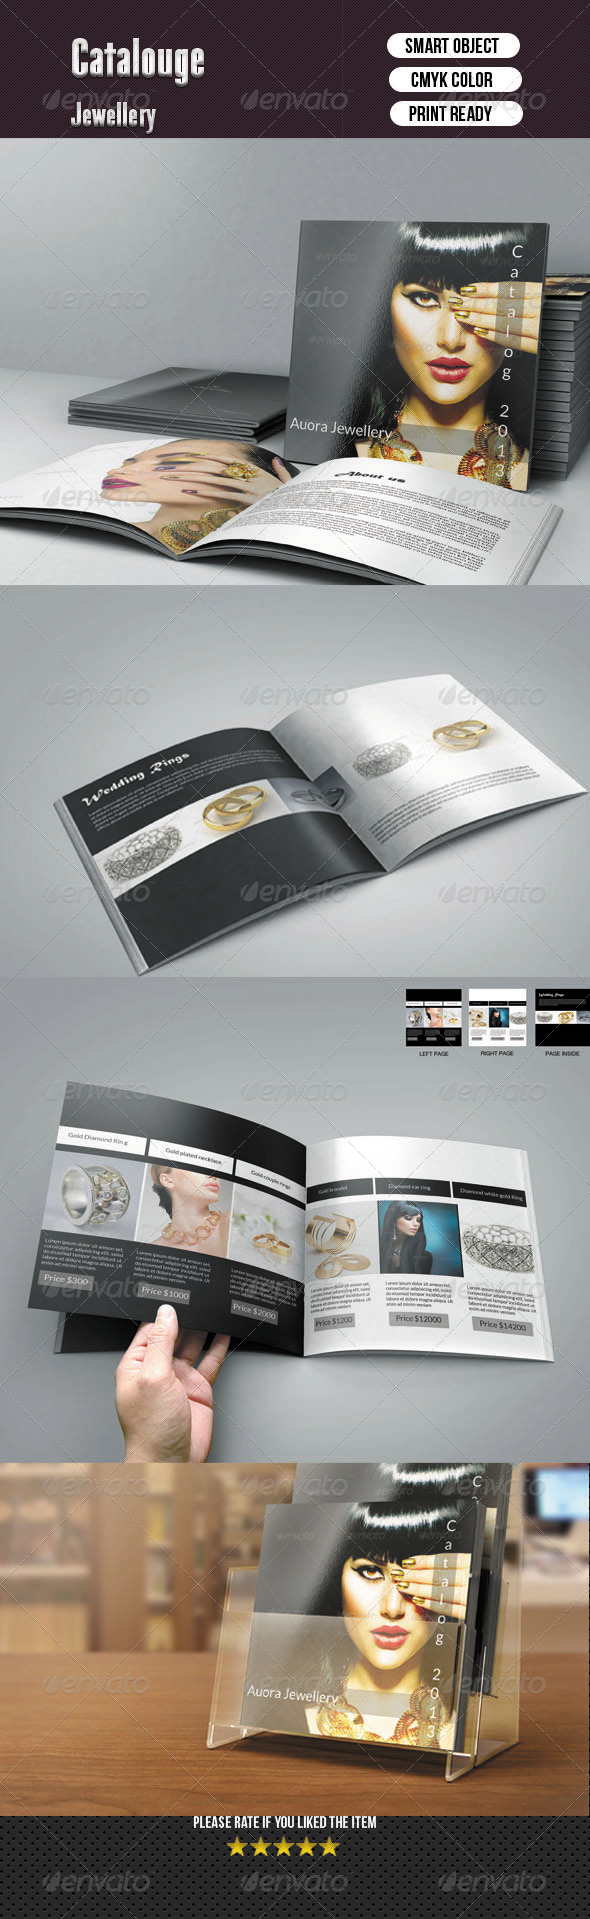 Square Bifold Template - 8 Pages - Corporate Brochures